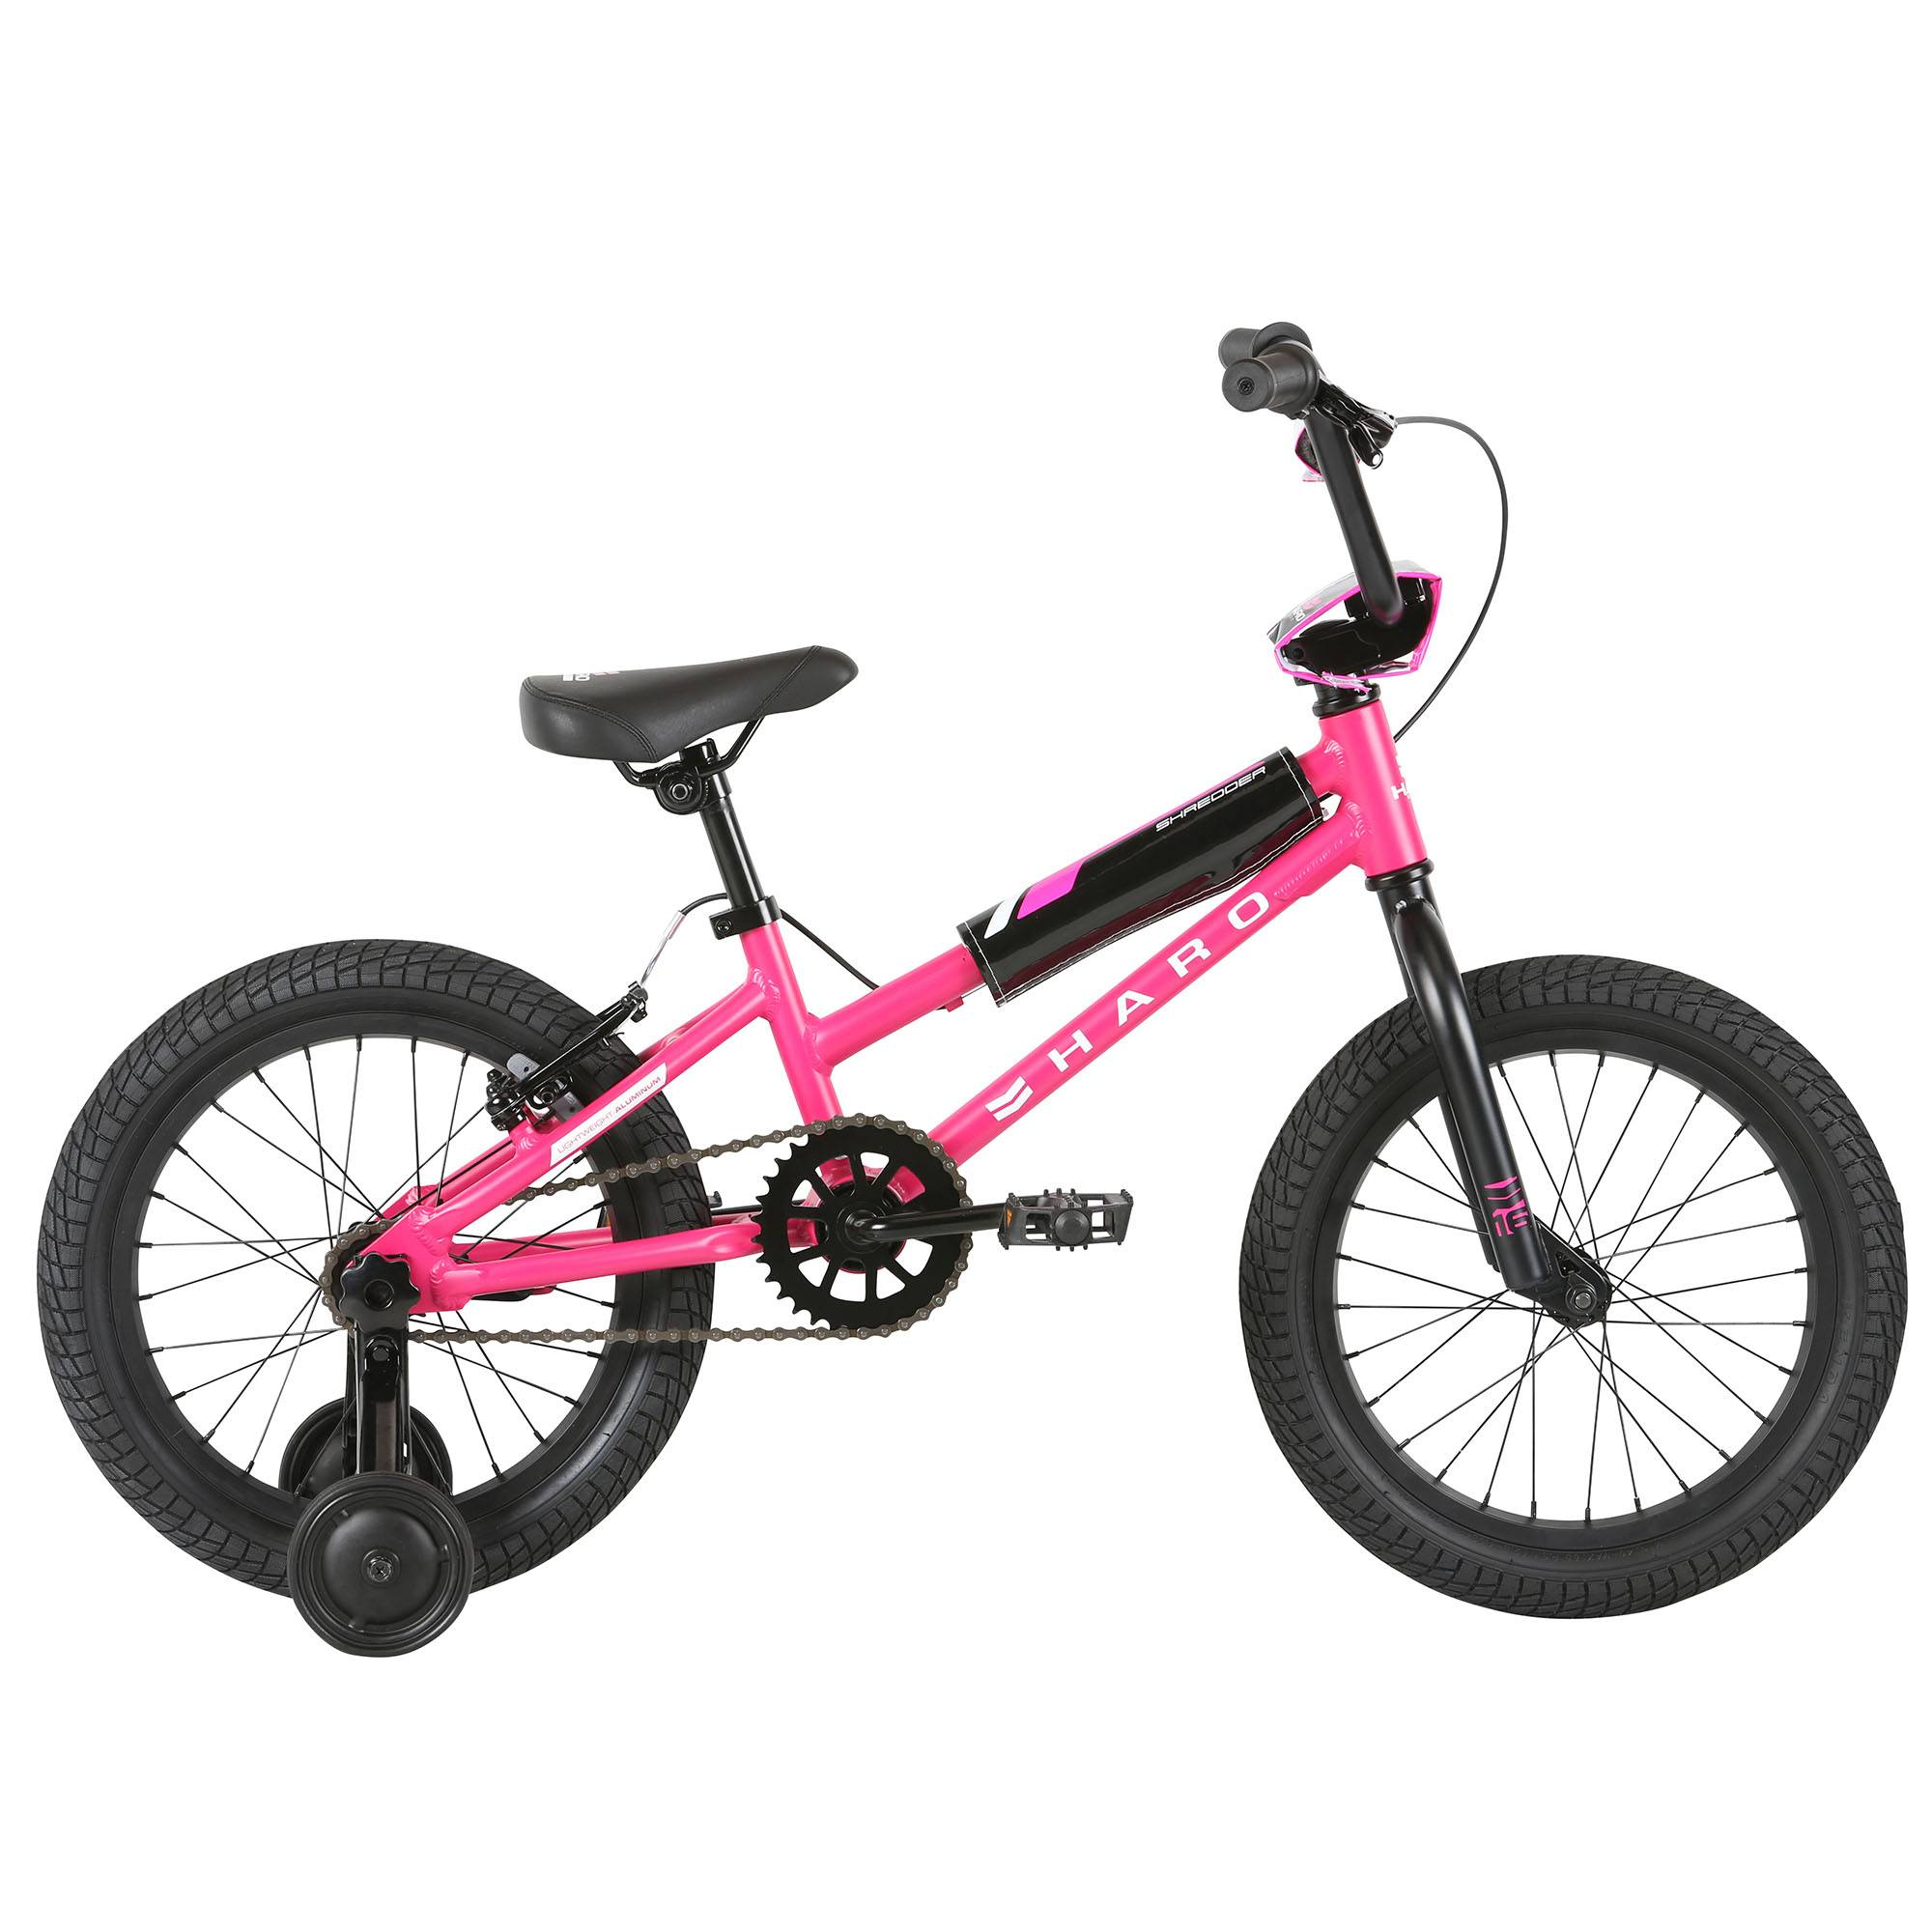 Haro Girl's Shredder 16 Sidewalk Bike '21  - Sky Blue - Size: 16